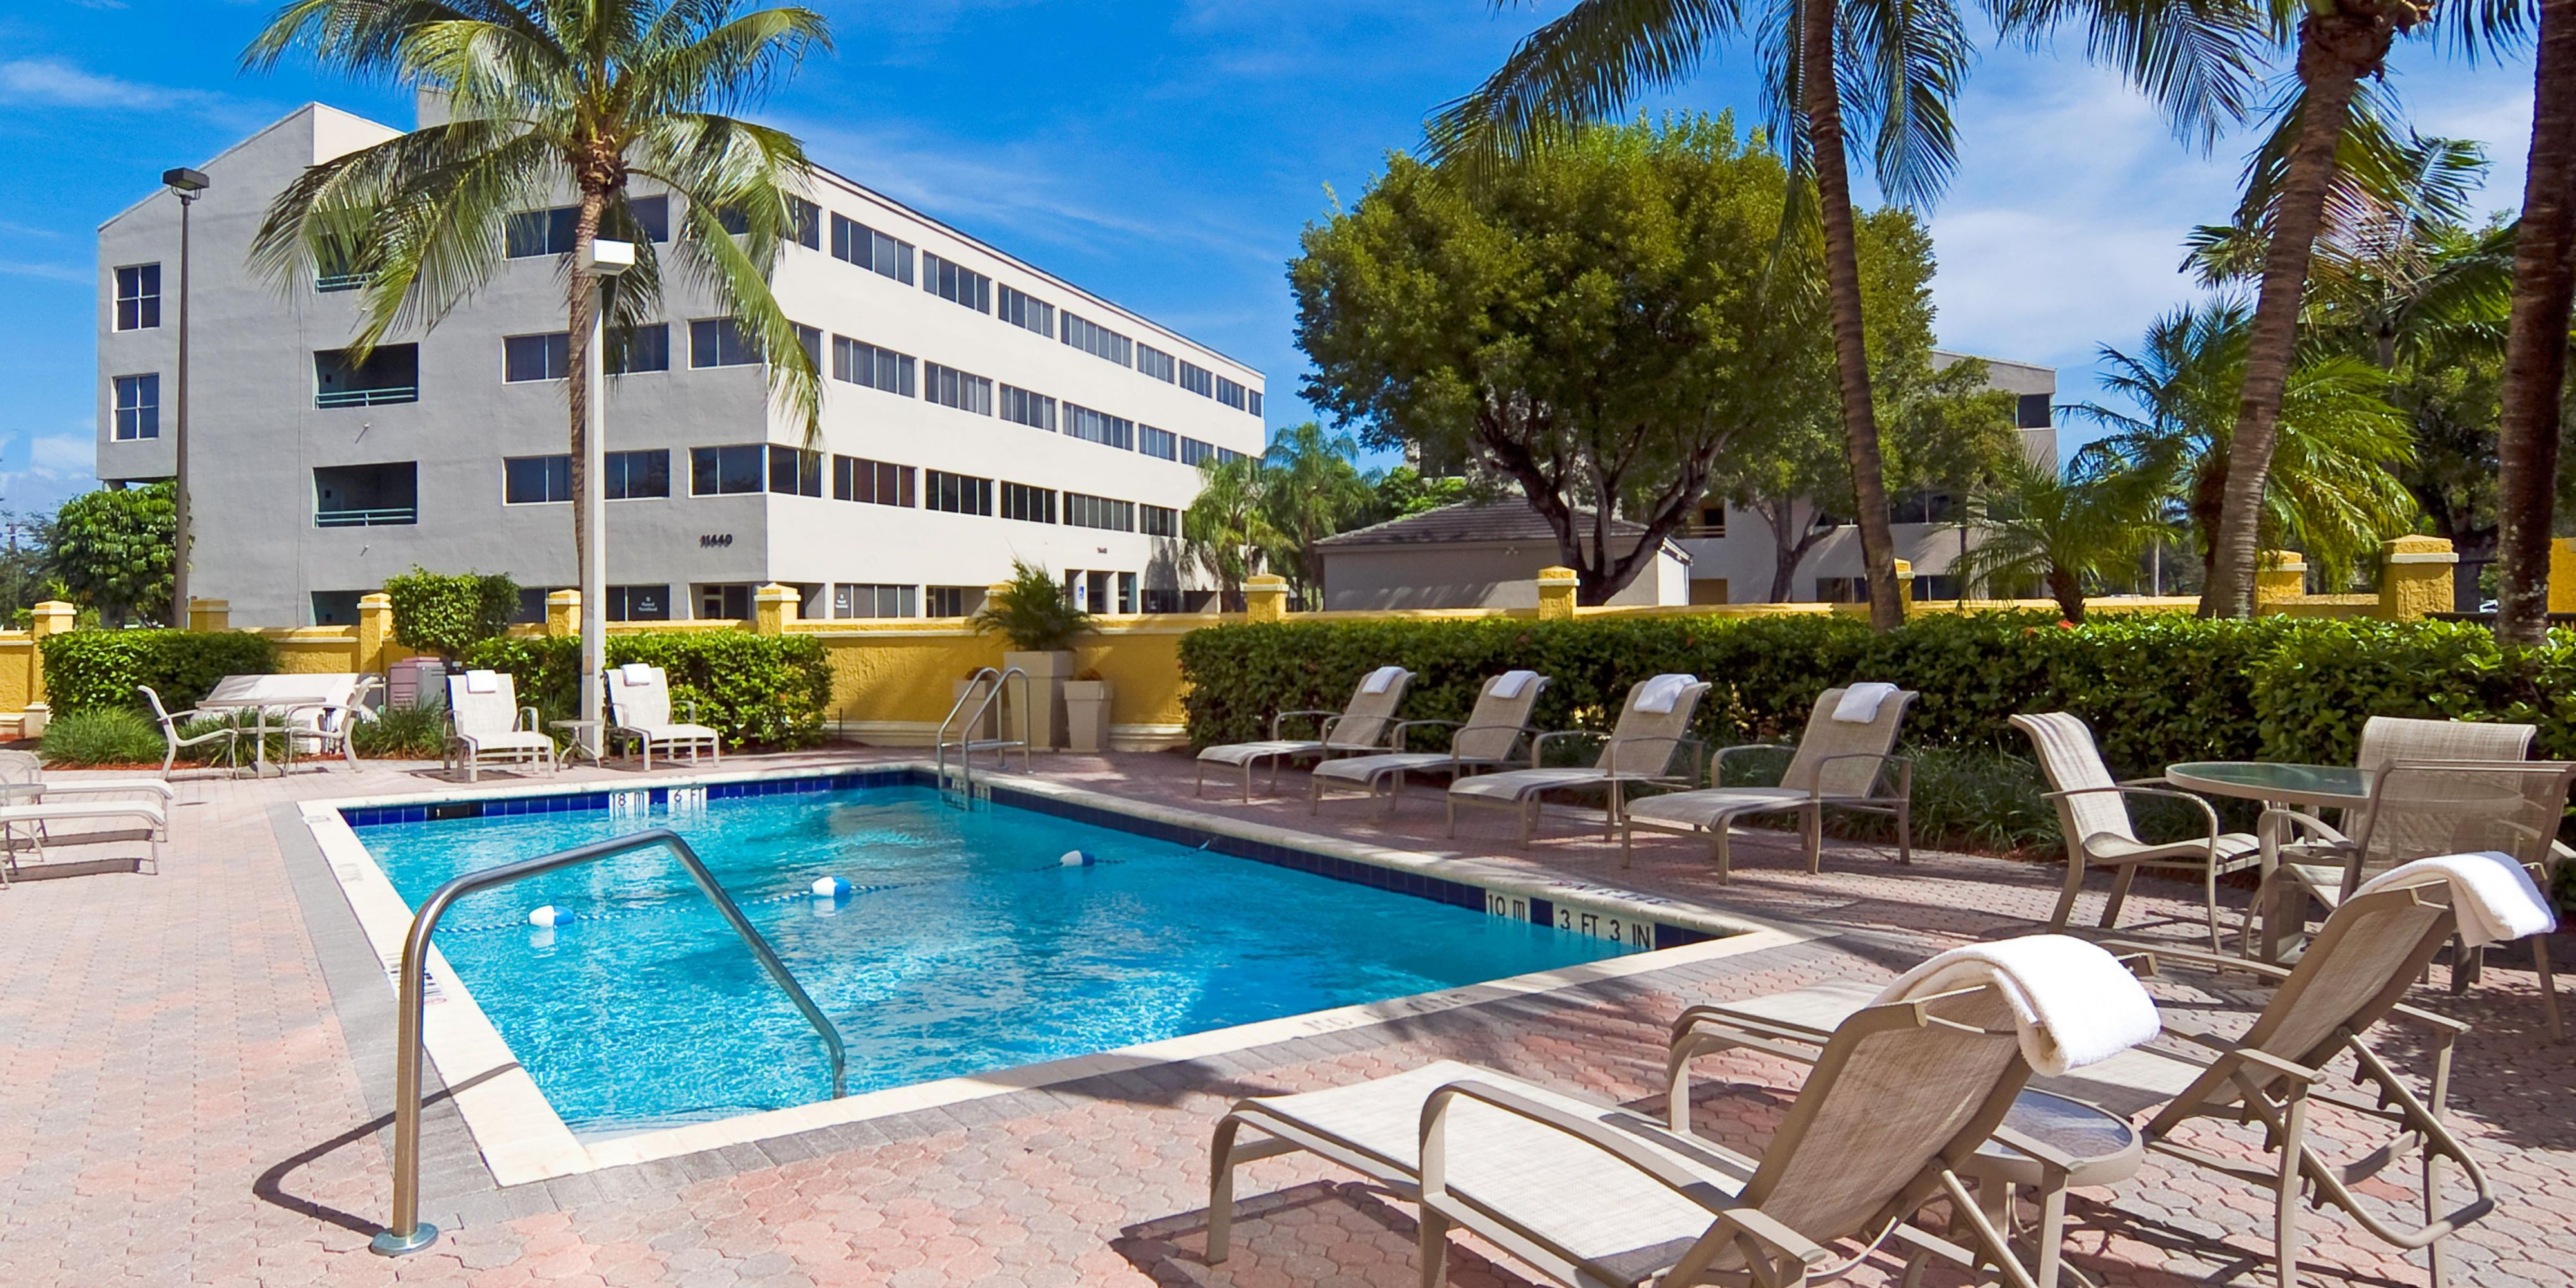 Holiday Inn Express & Suites Kendall East - Miami Hotel by IHG